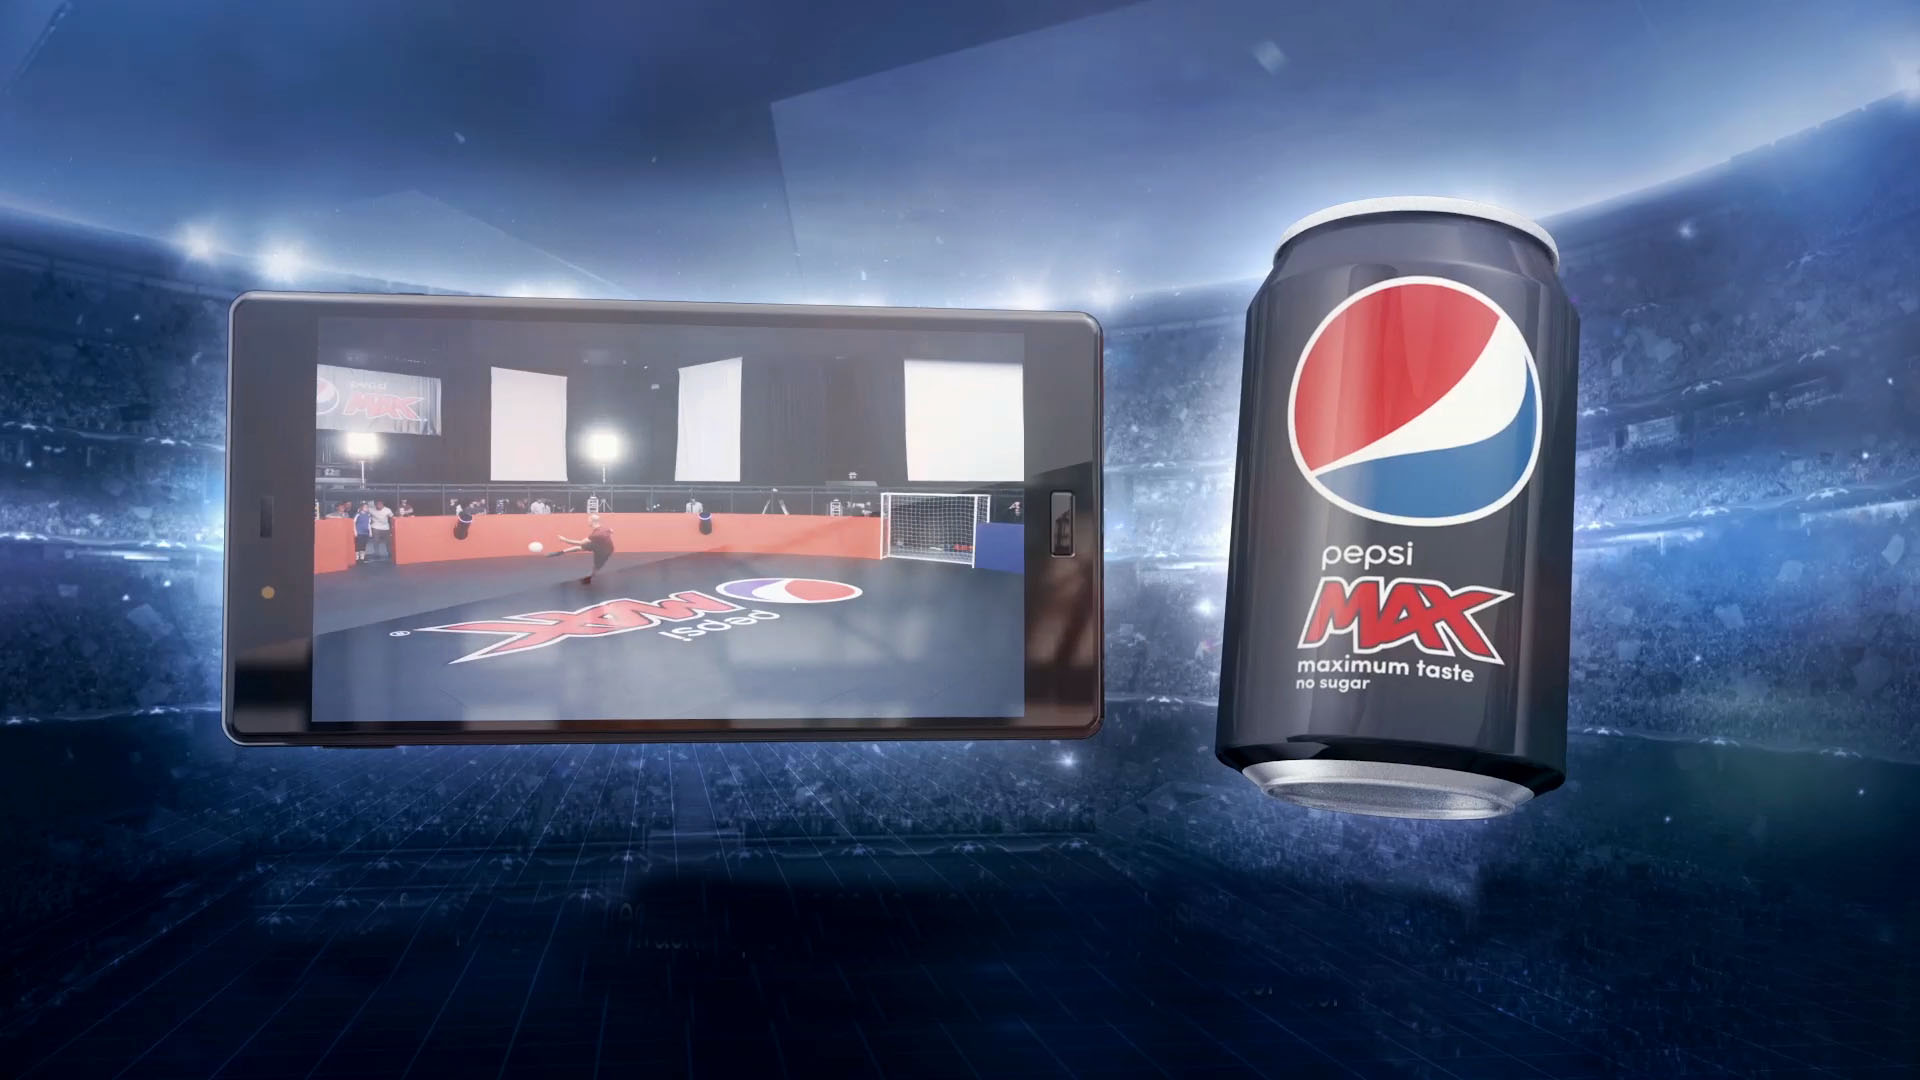 pepsi max cg animation